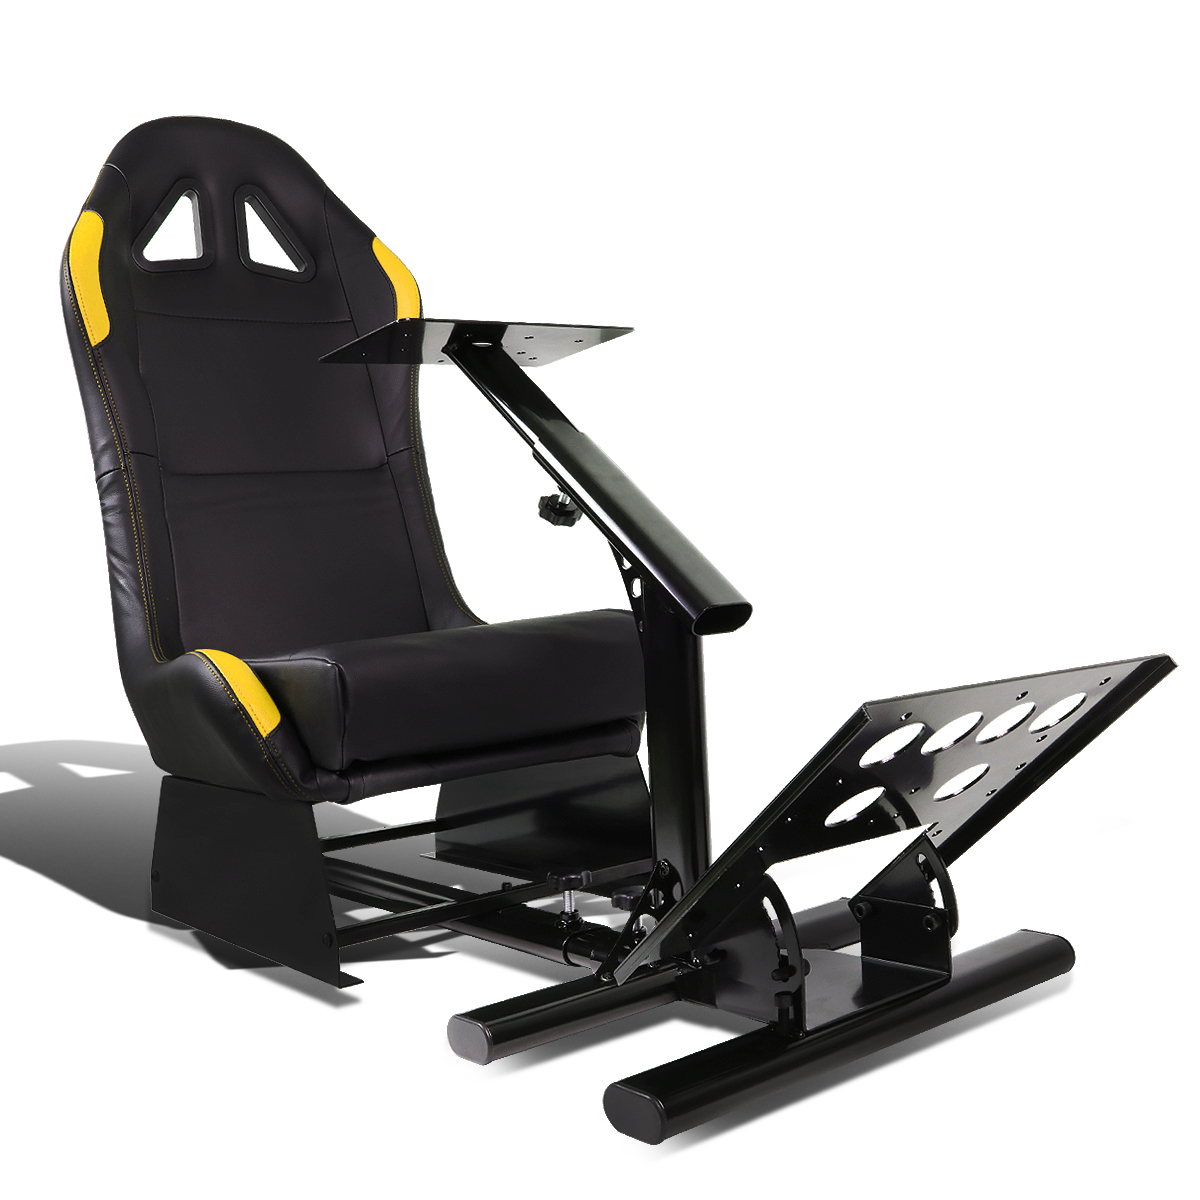 Racing Seat Driving Simulator Cockpit Adjustable Gaming Chair + Steering Wheel / Pedal / Gear Shifter Mount (Yellow)